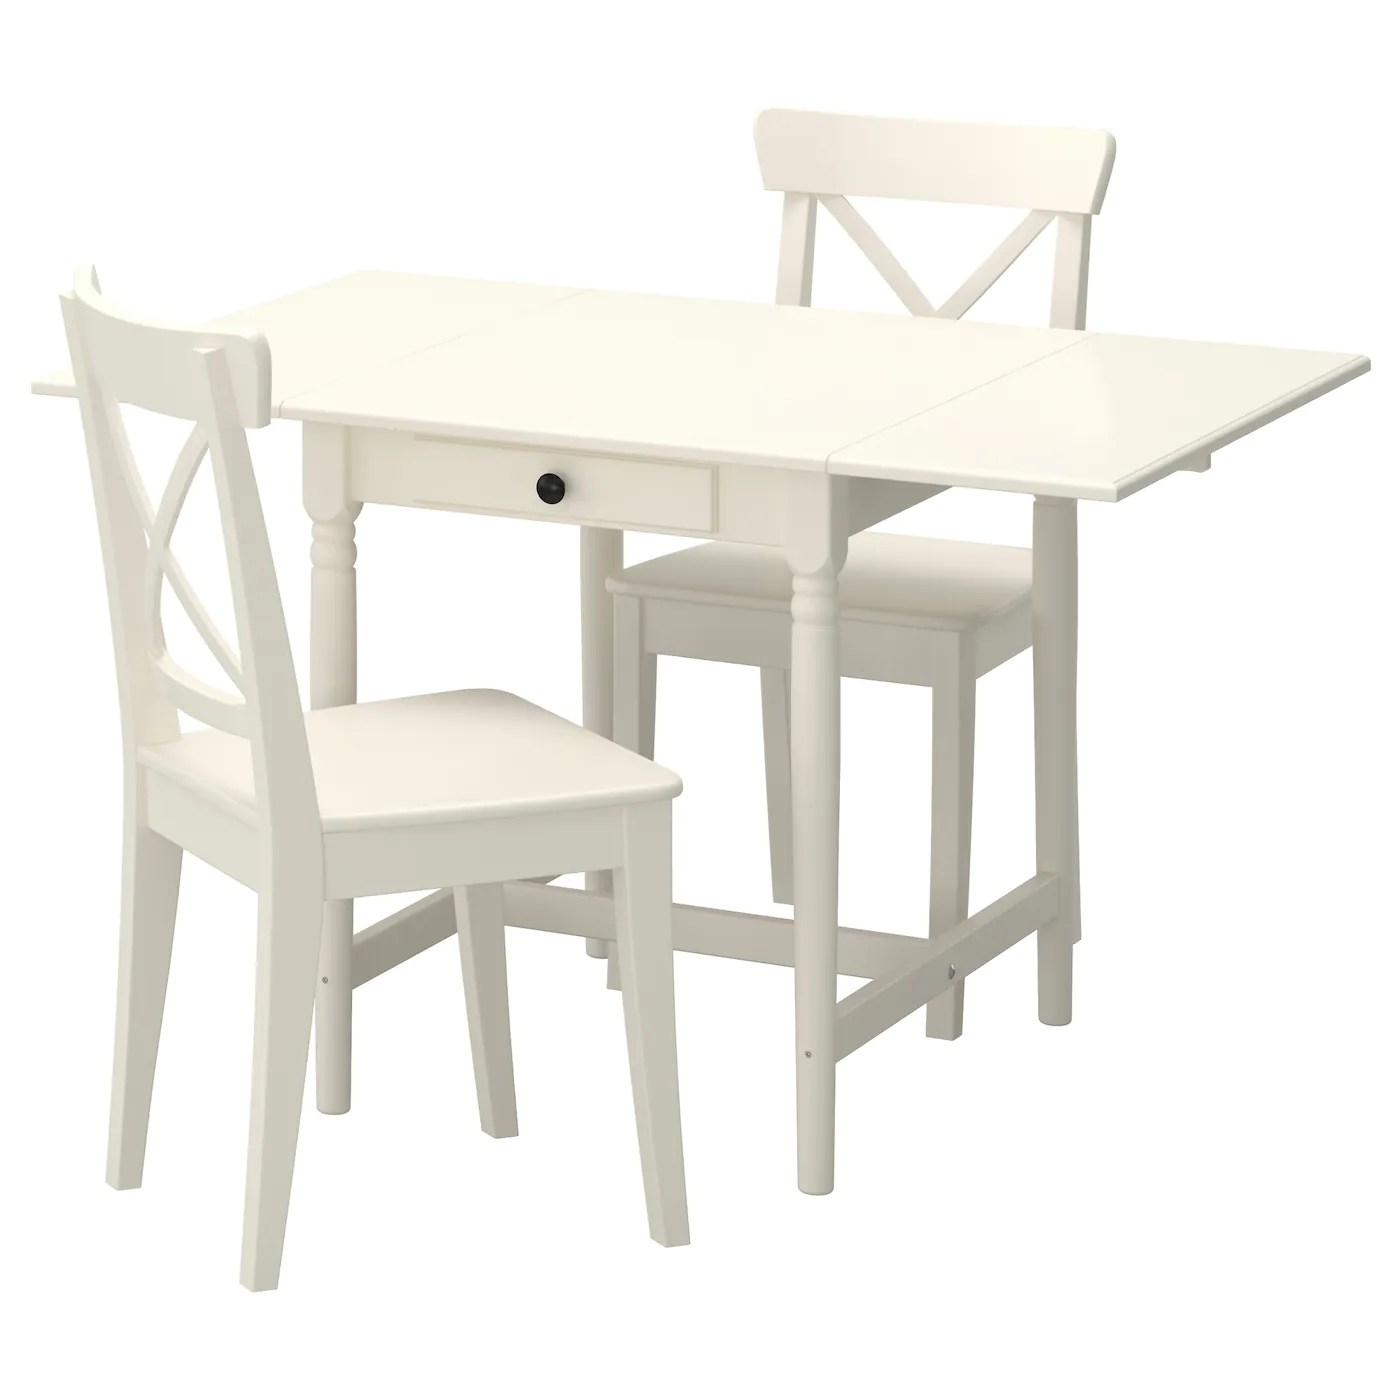 Ikea Tafel Küche Small Dining Table Sets 2 Seater Dining Table And Chairs